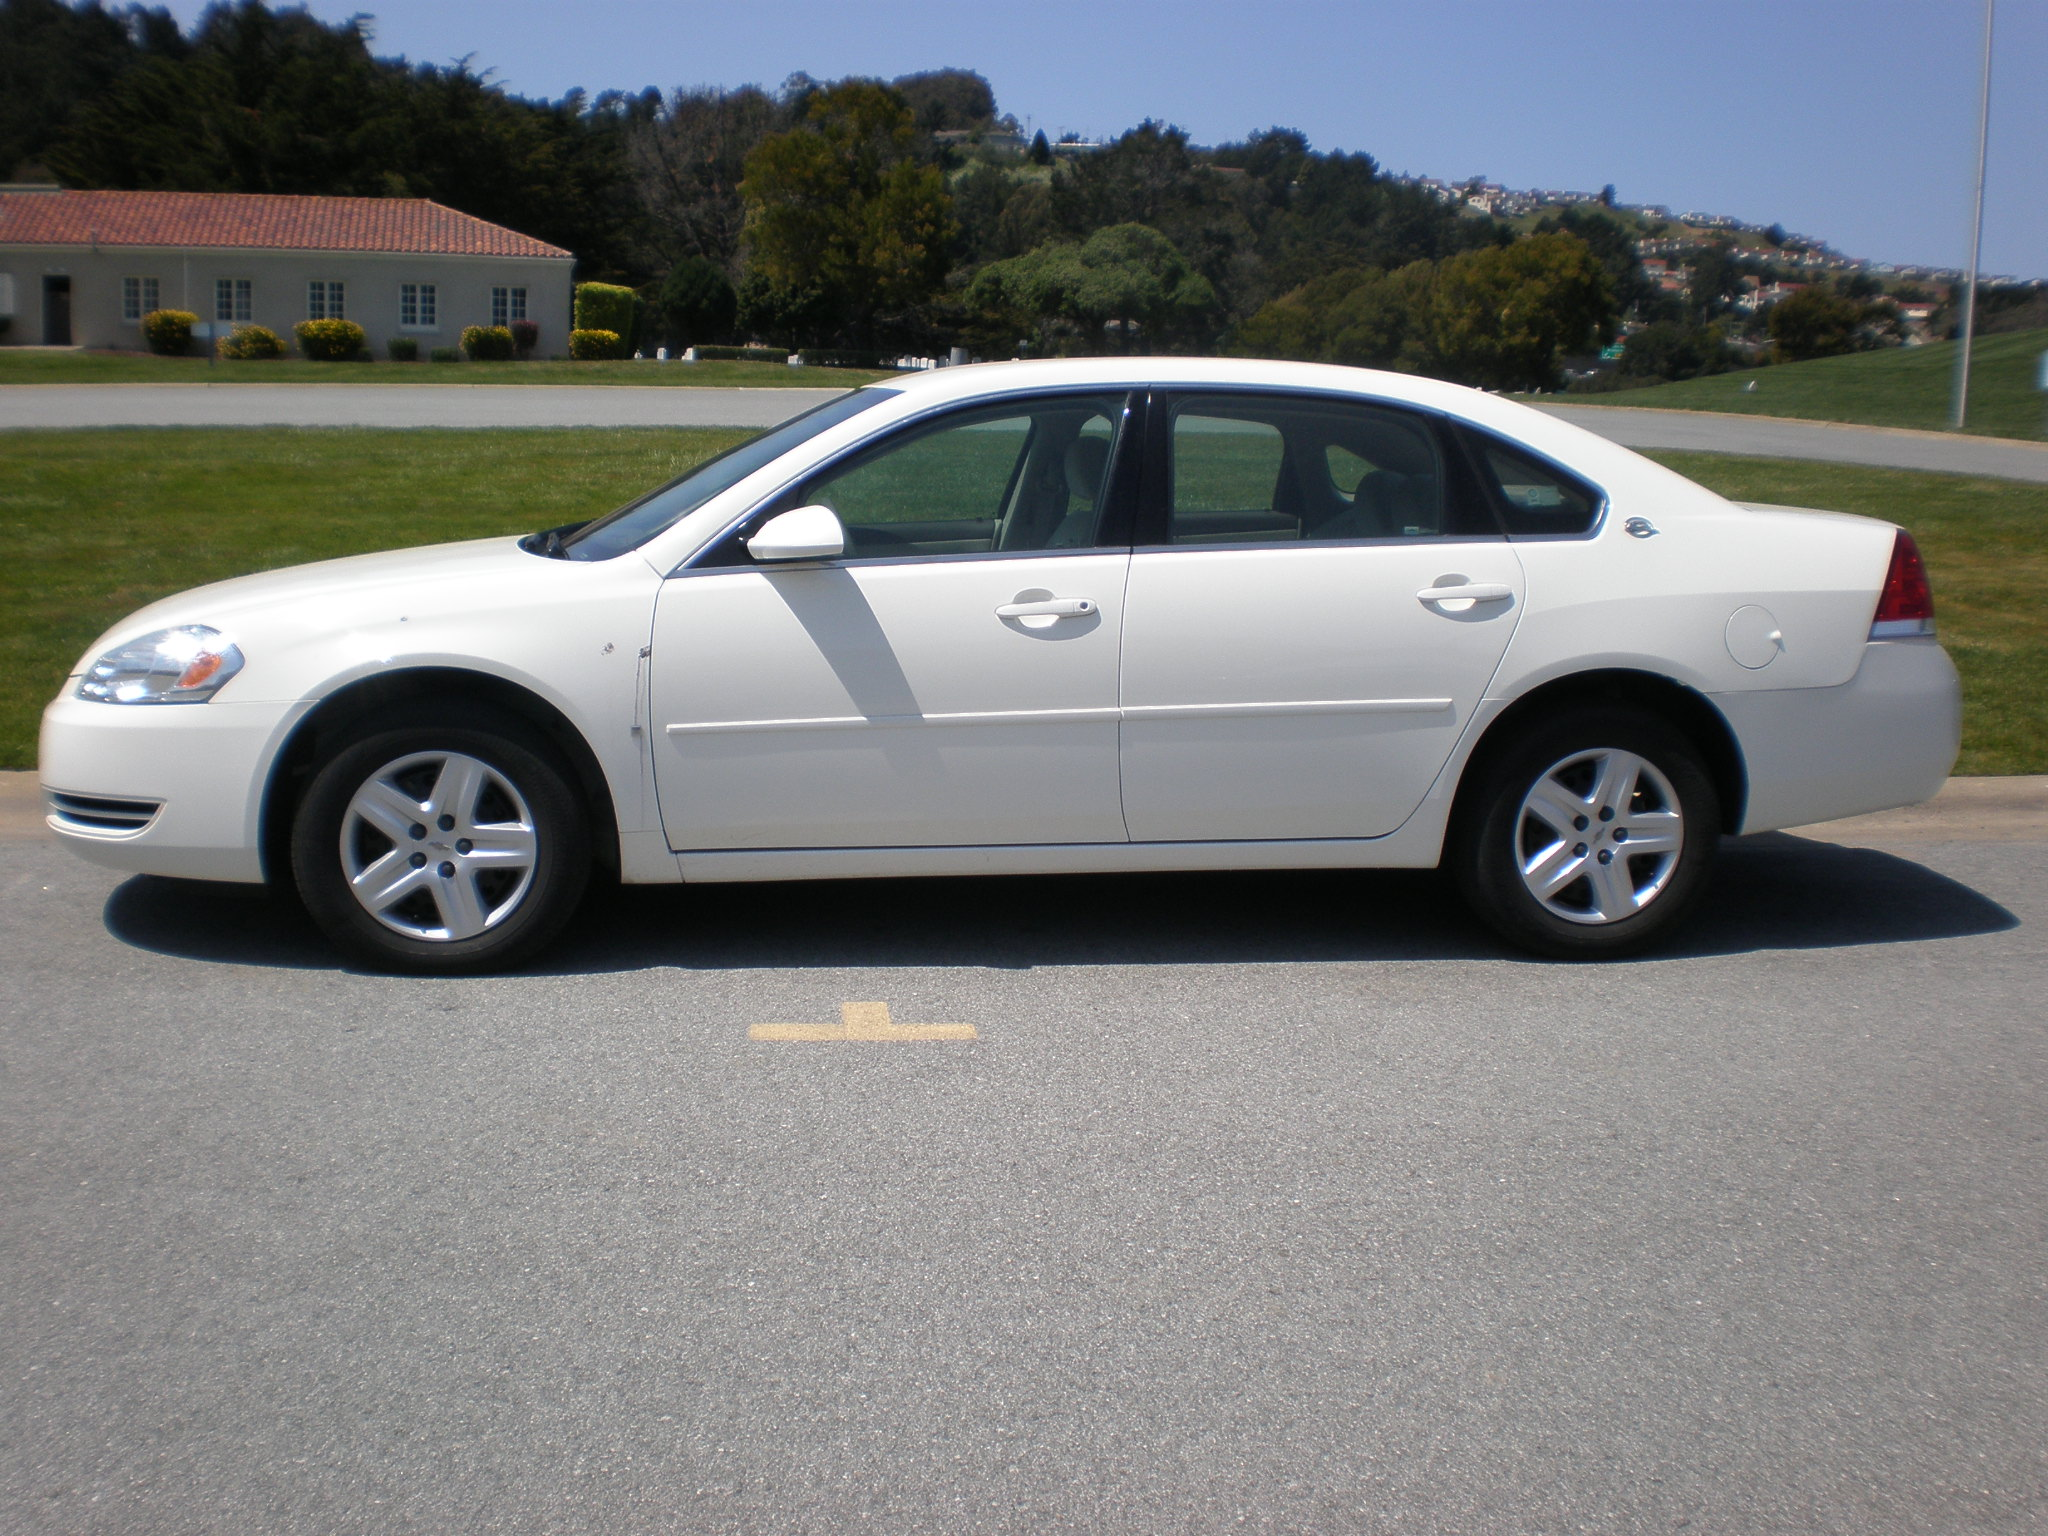 File:White Chevrolet Impala LS side.JPG